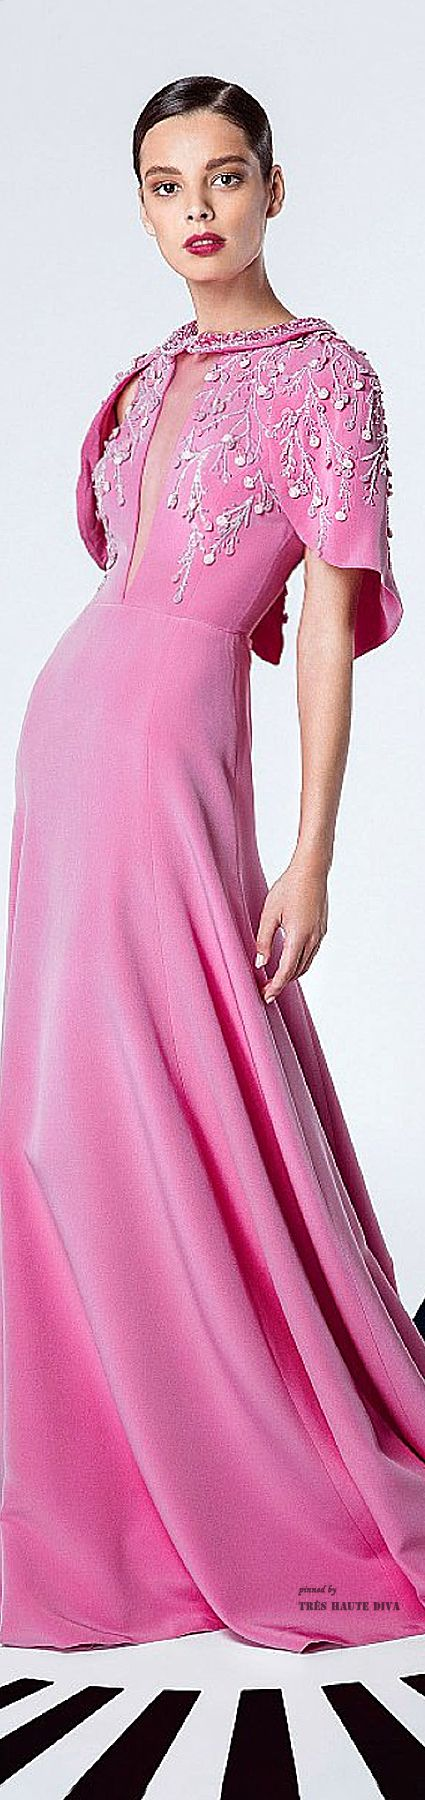 Georges Hobeika Spring Summer 2015 ♔ Pink Evening Gown ♔ Tres Haute Diva- LadyLuxury